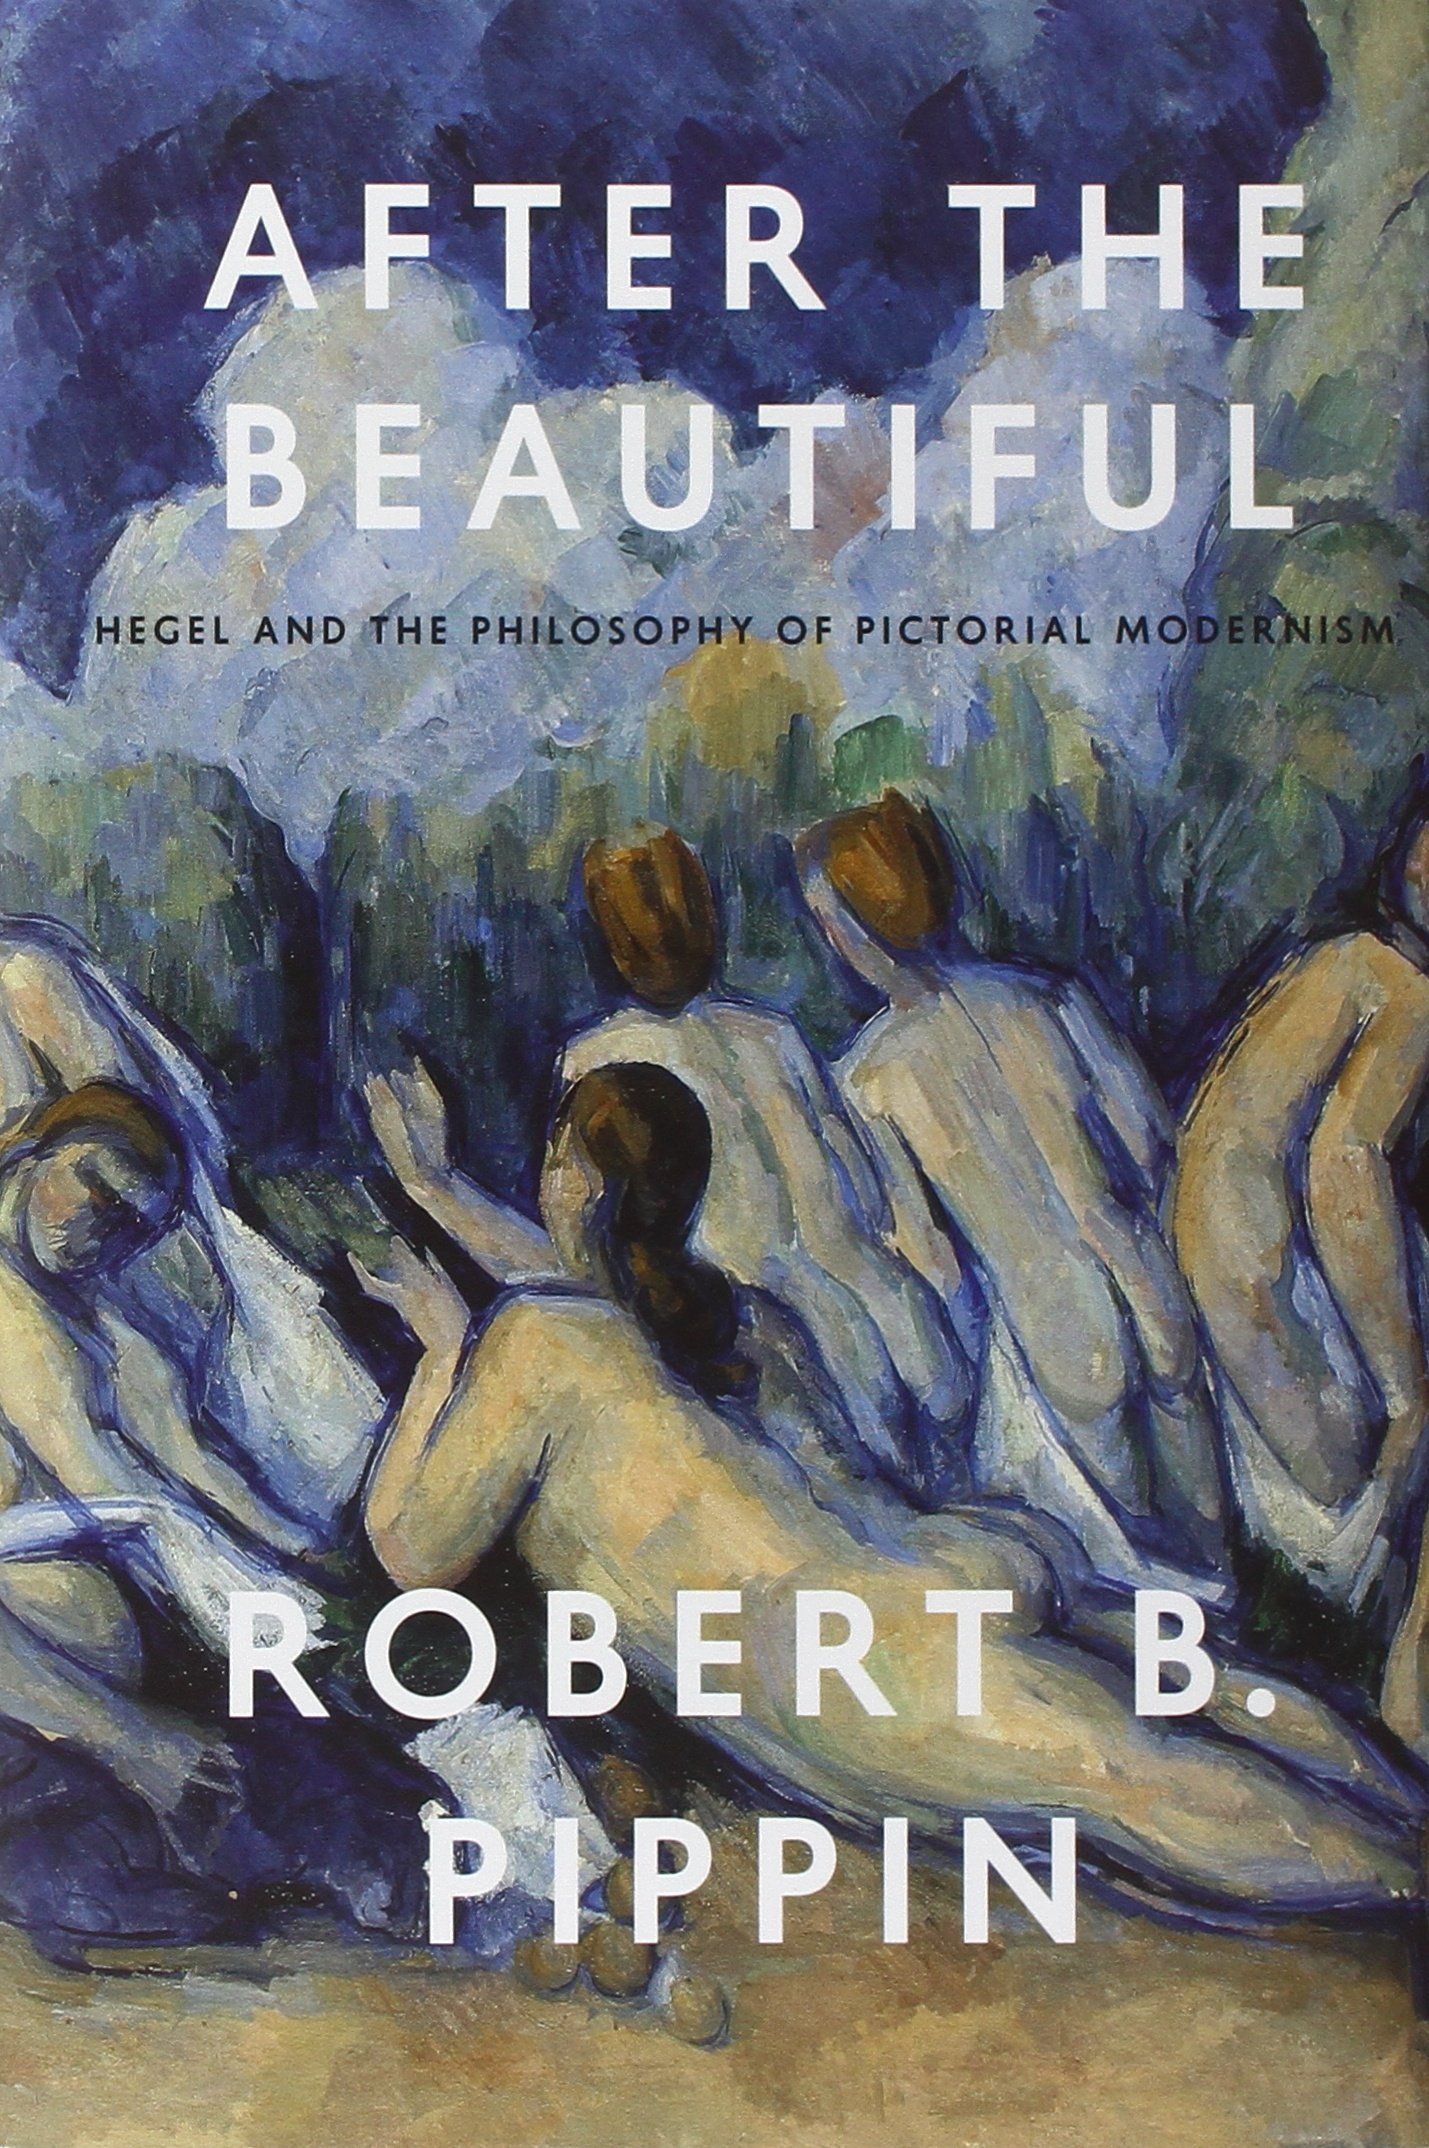 Download After the Beautiful: Hegel and the Philosophy of Pictorial Modernism ebook